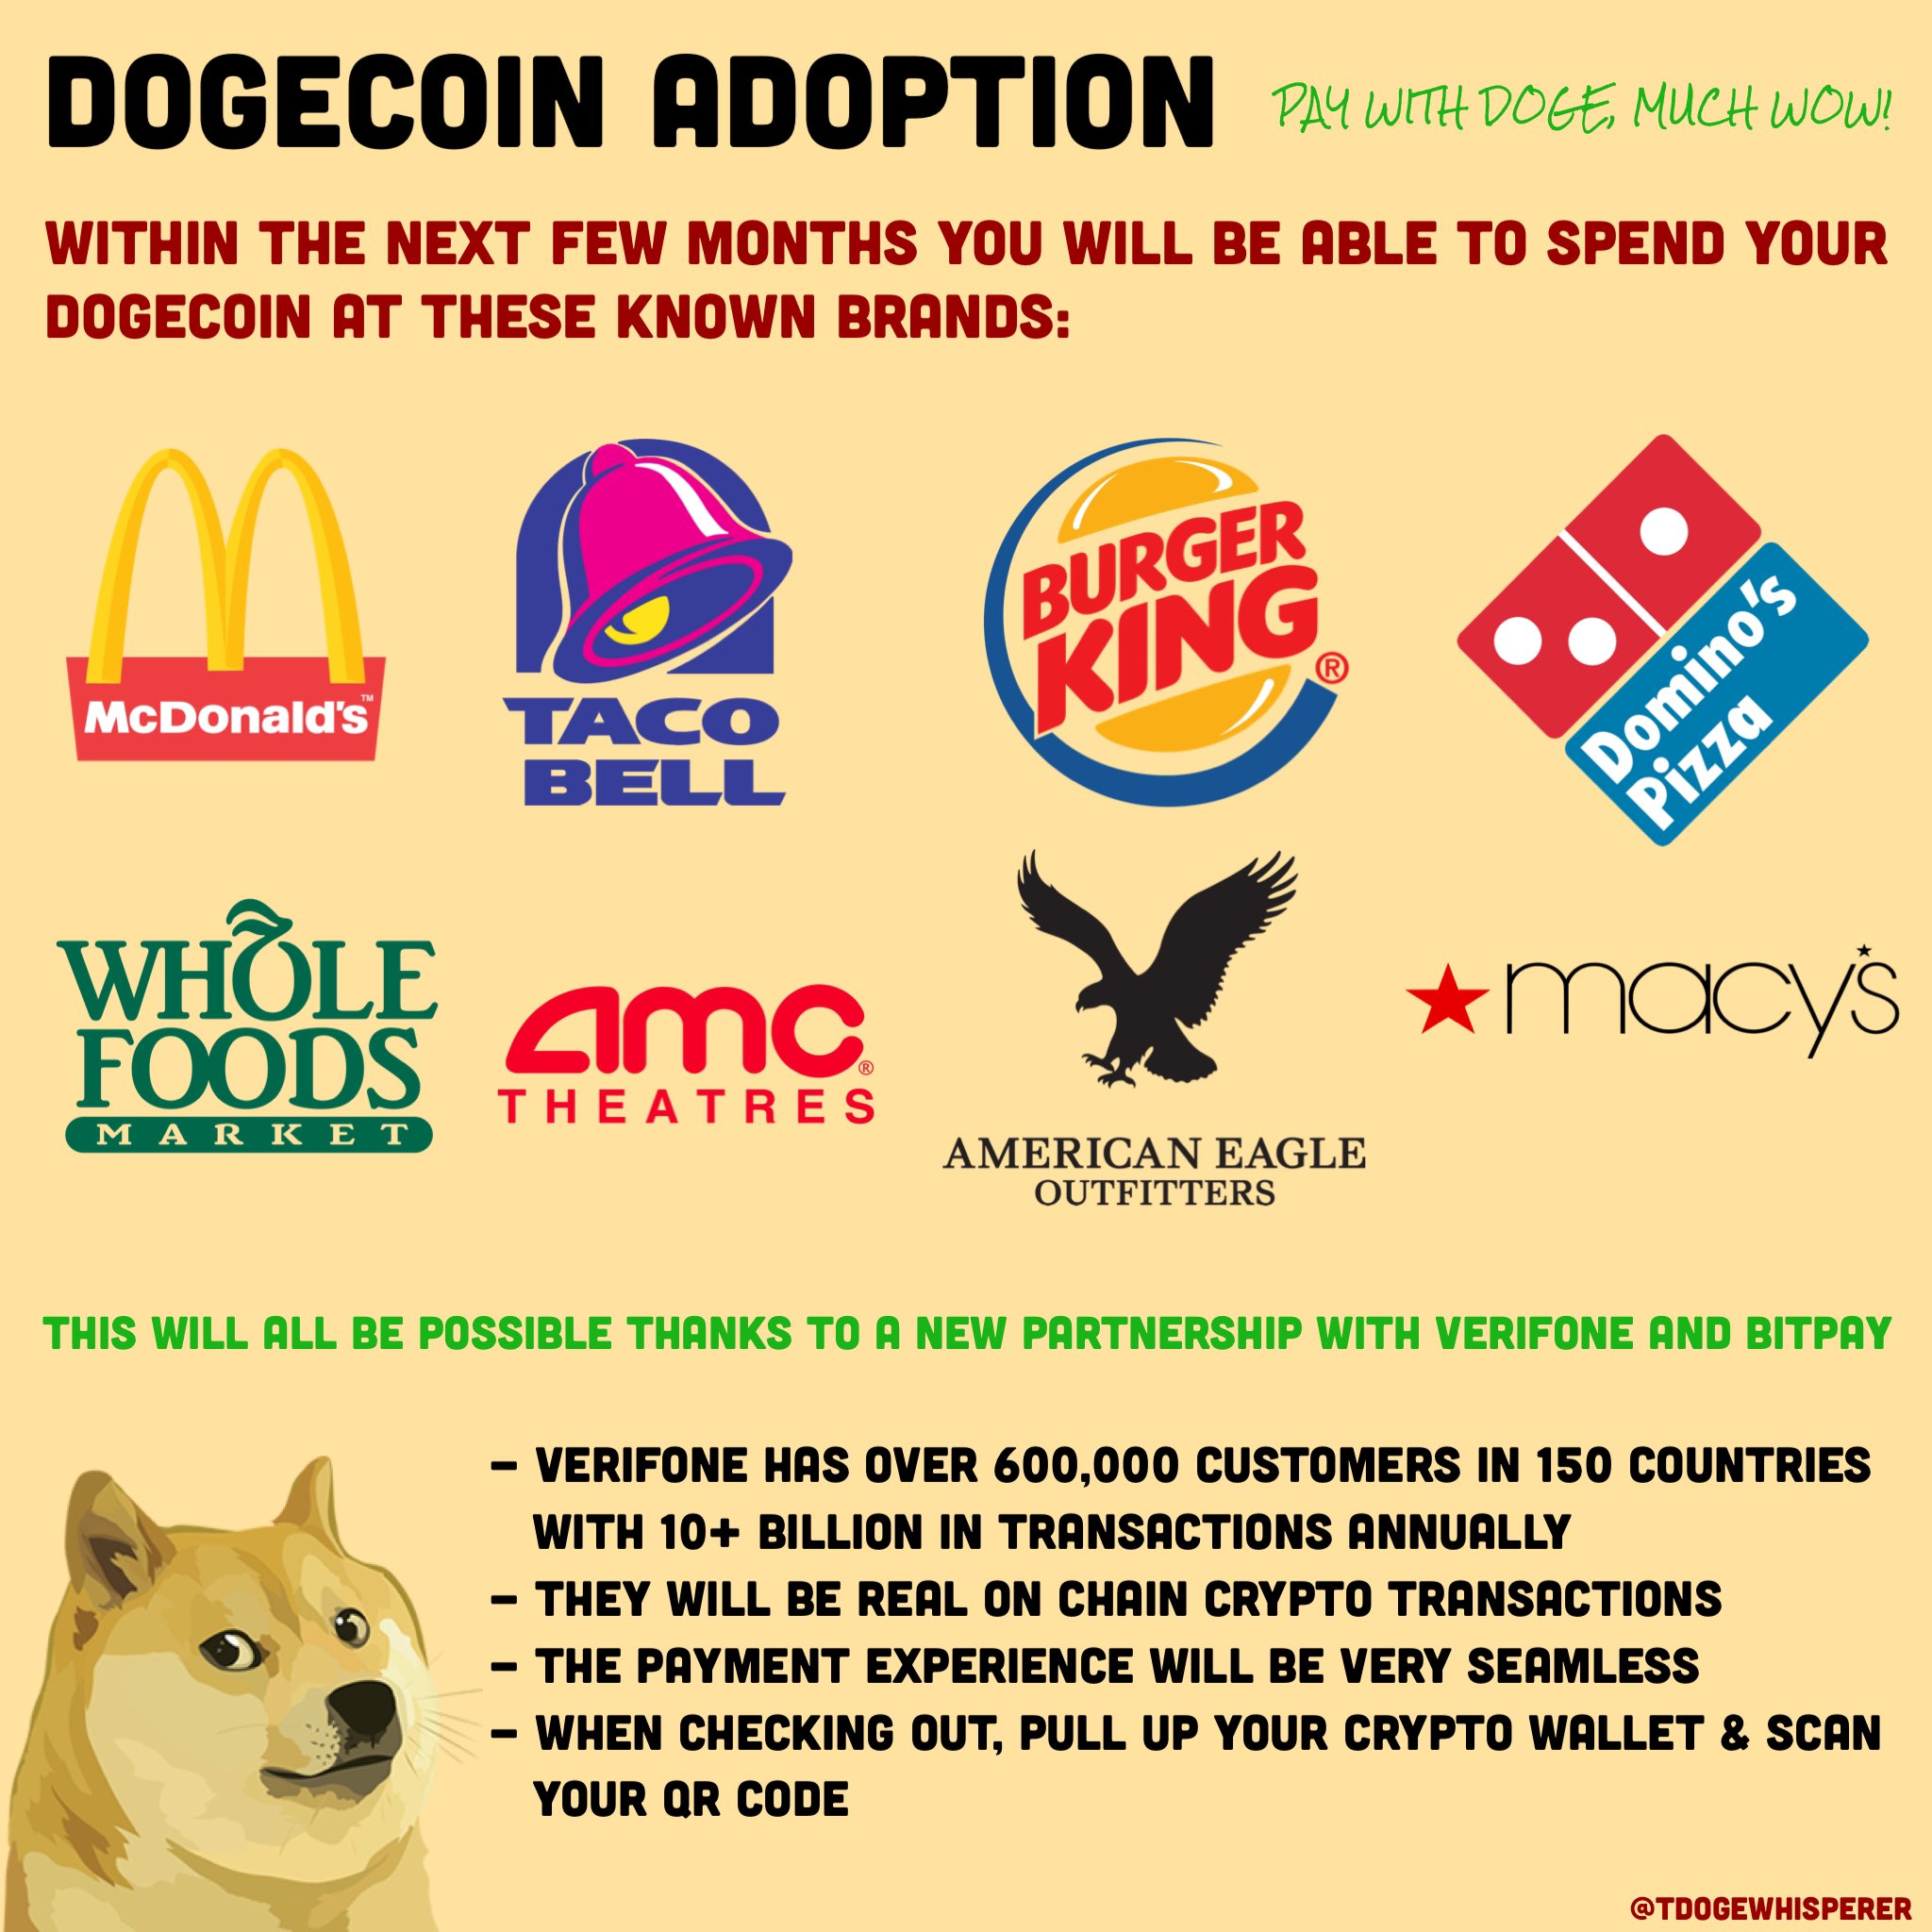 Taco Bell Accepting Dogecoin?